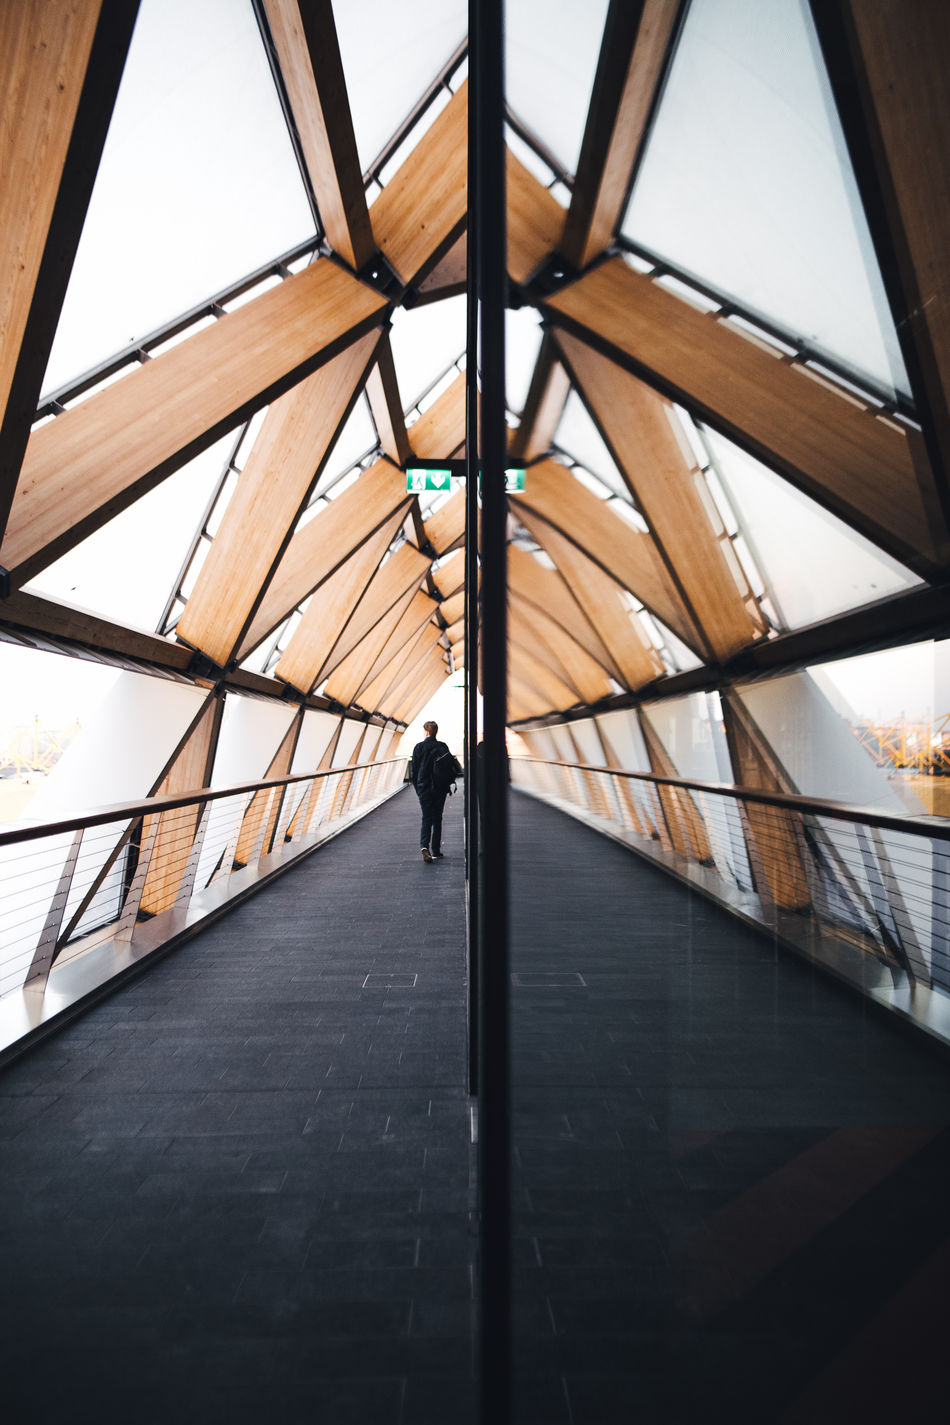 Canary vibes. Architecture Architecture Built Structure Check This Out City City City Life Day Exploring EyeEm Best Shots Full Length Geometry LINE London Modern One Person People Real People Reflection Reflections Streetphotography Taking Photos The Way Forward Triangle Walking